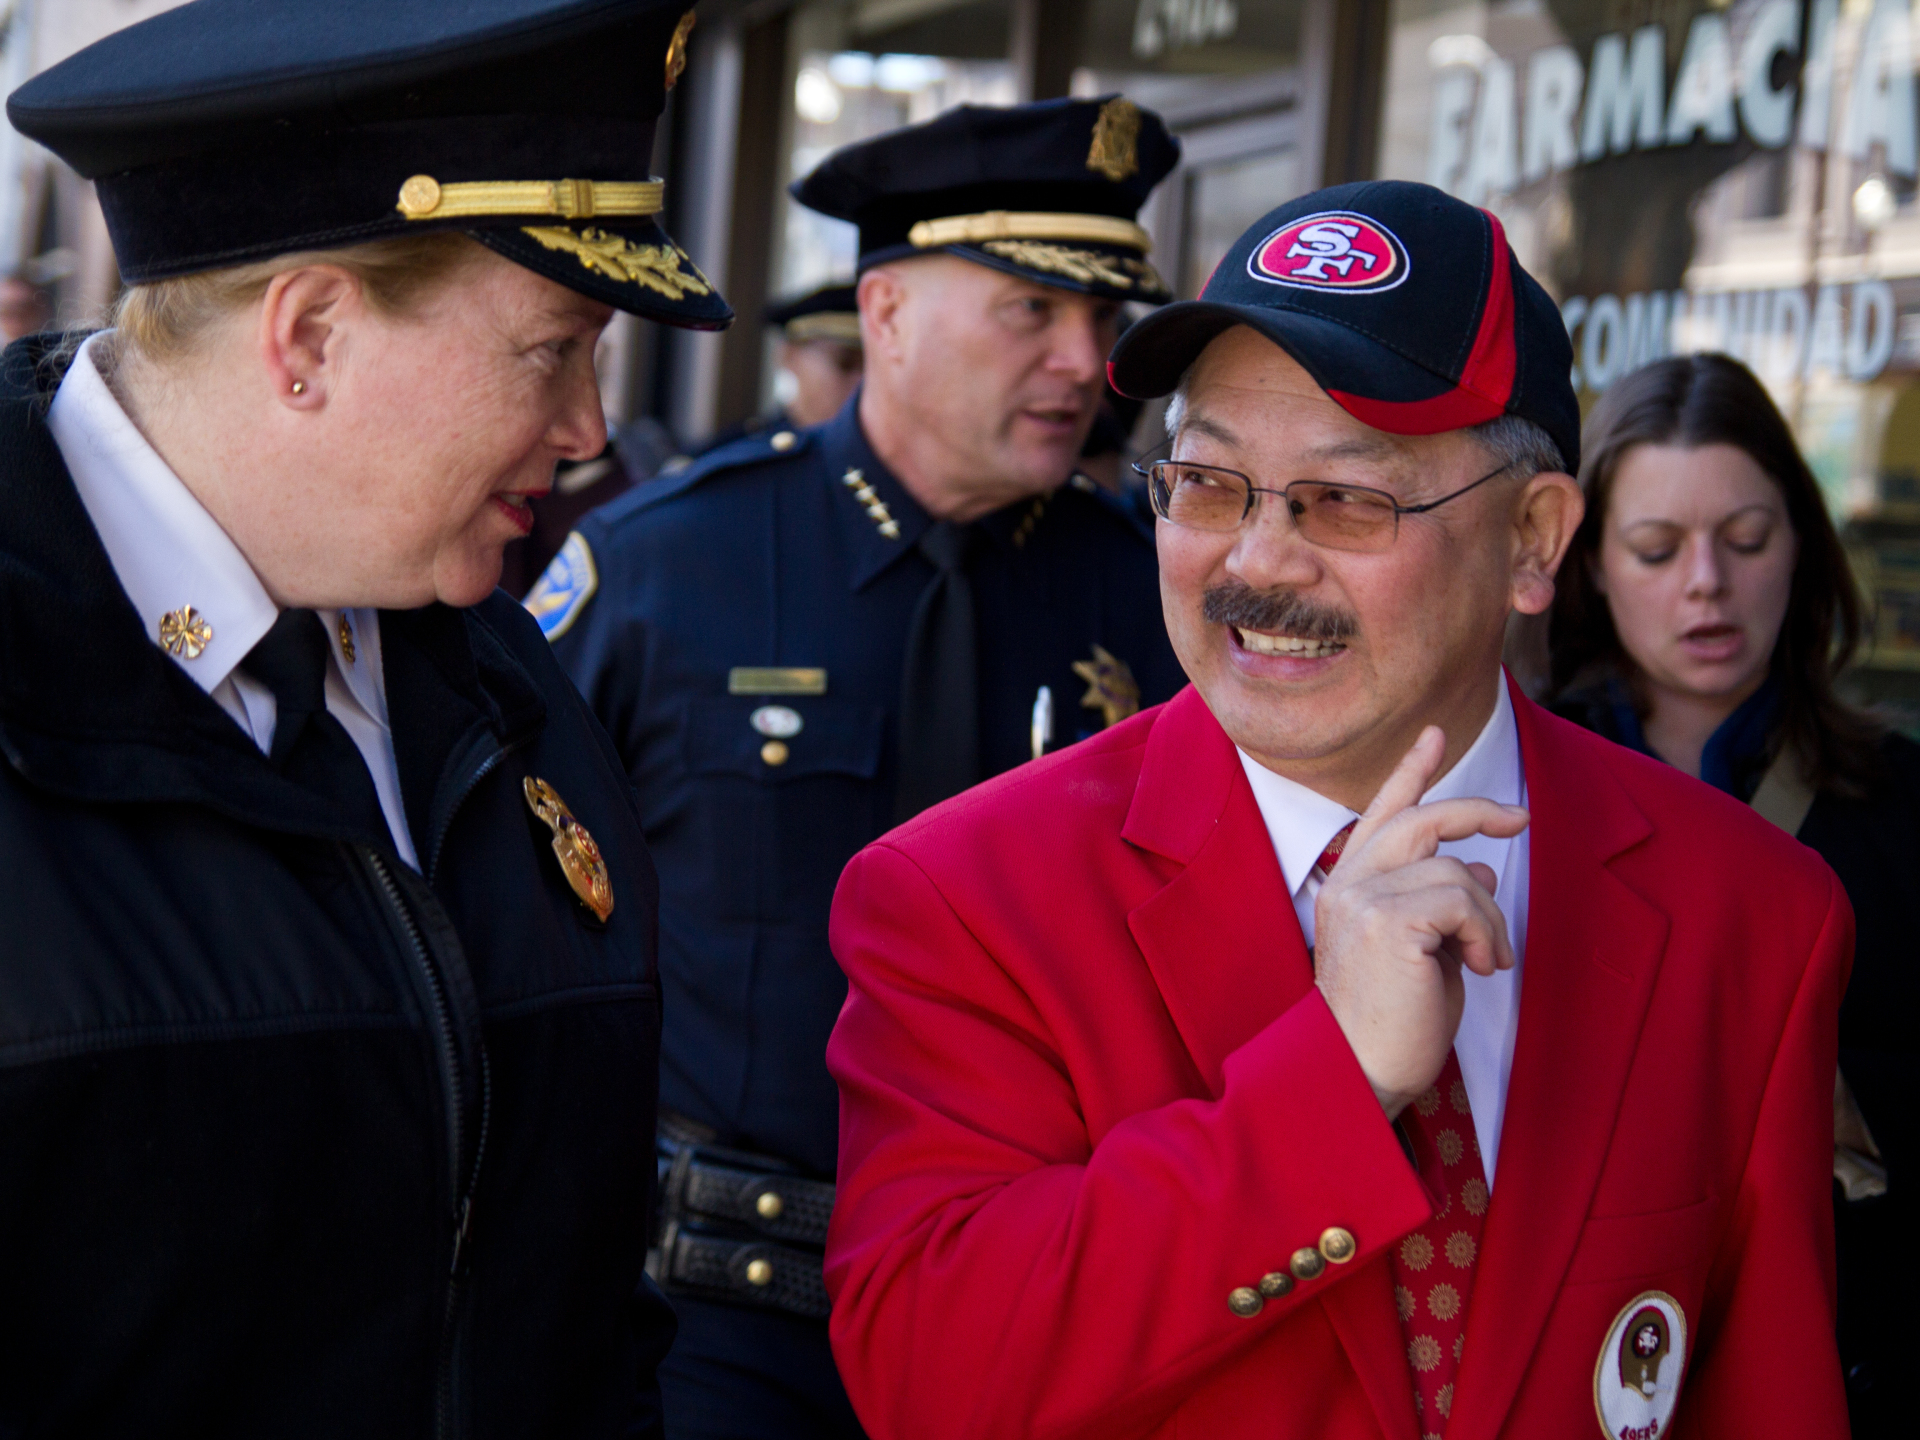 San Francisco Mayor Ed Lee with Fire Chief Joanne Hayes-White and Police Chief Greg Suhr in 2013.